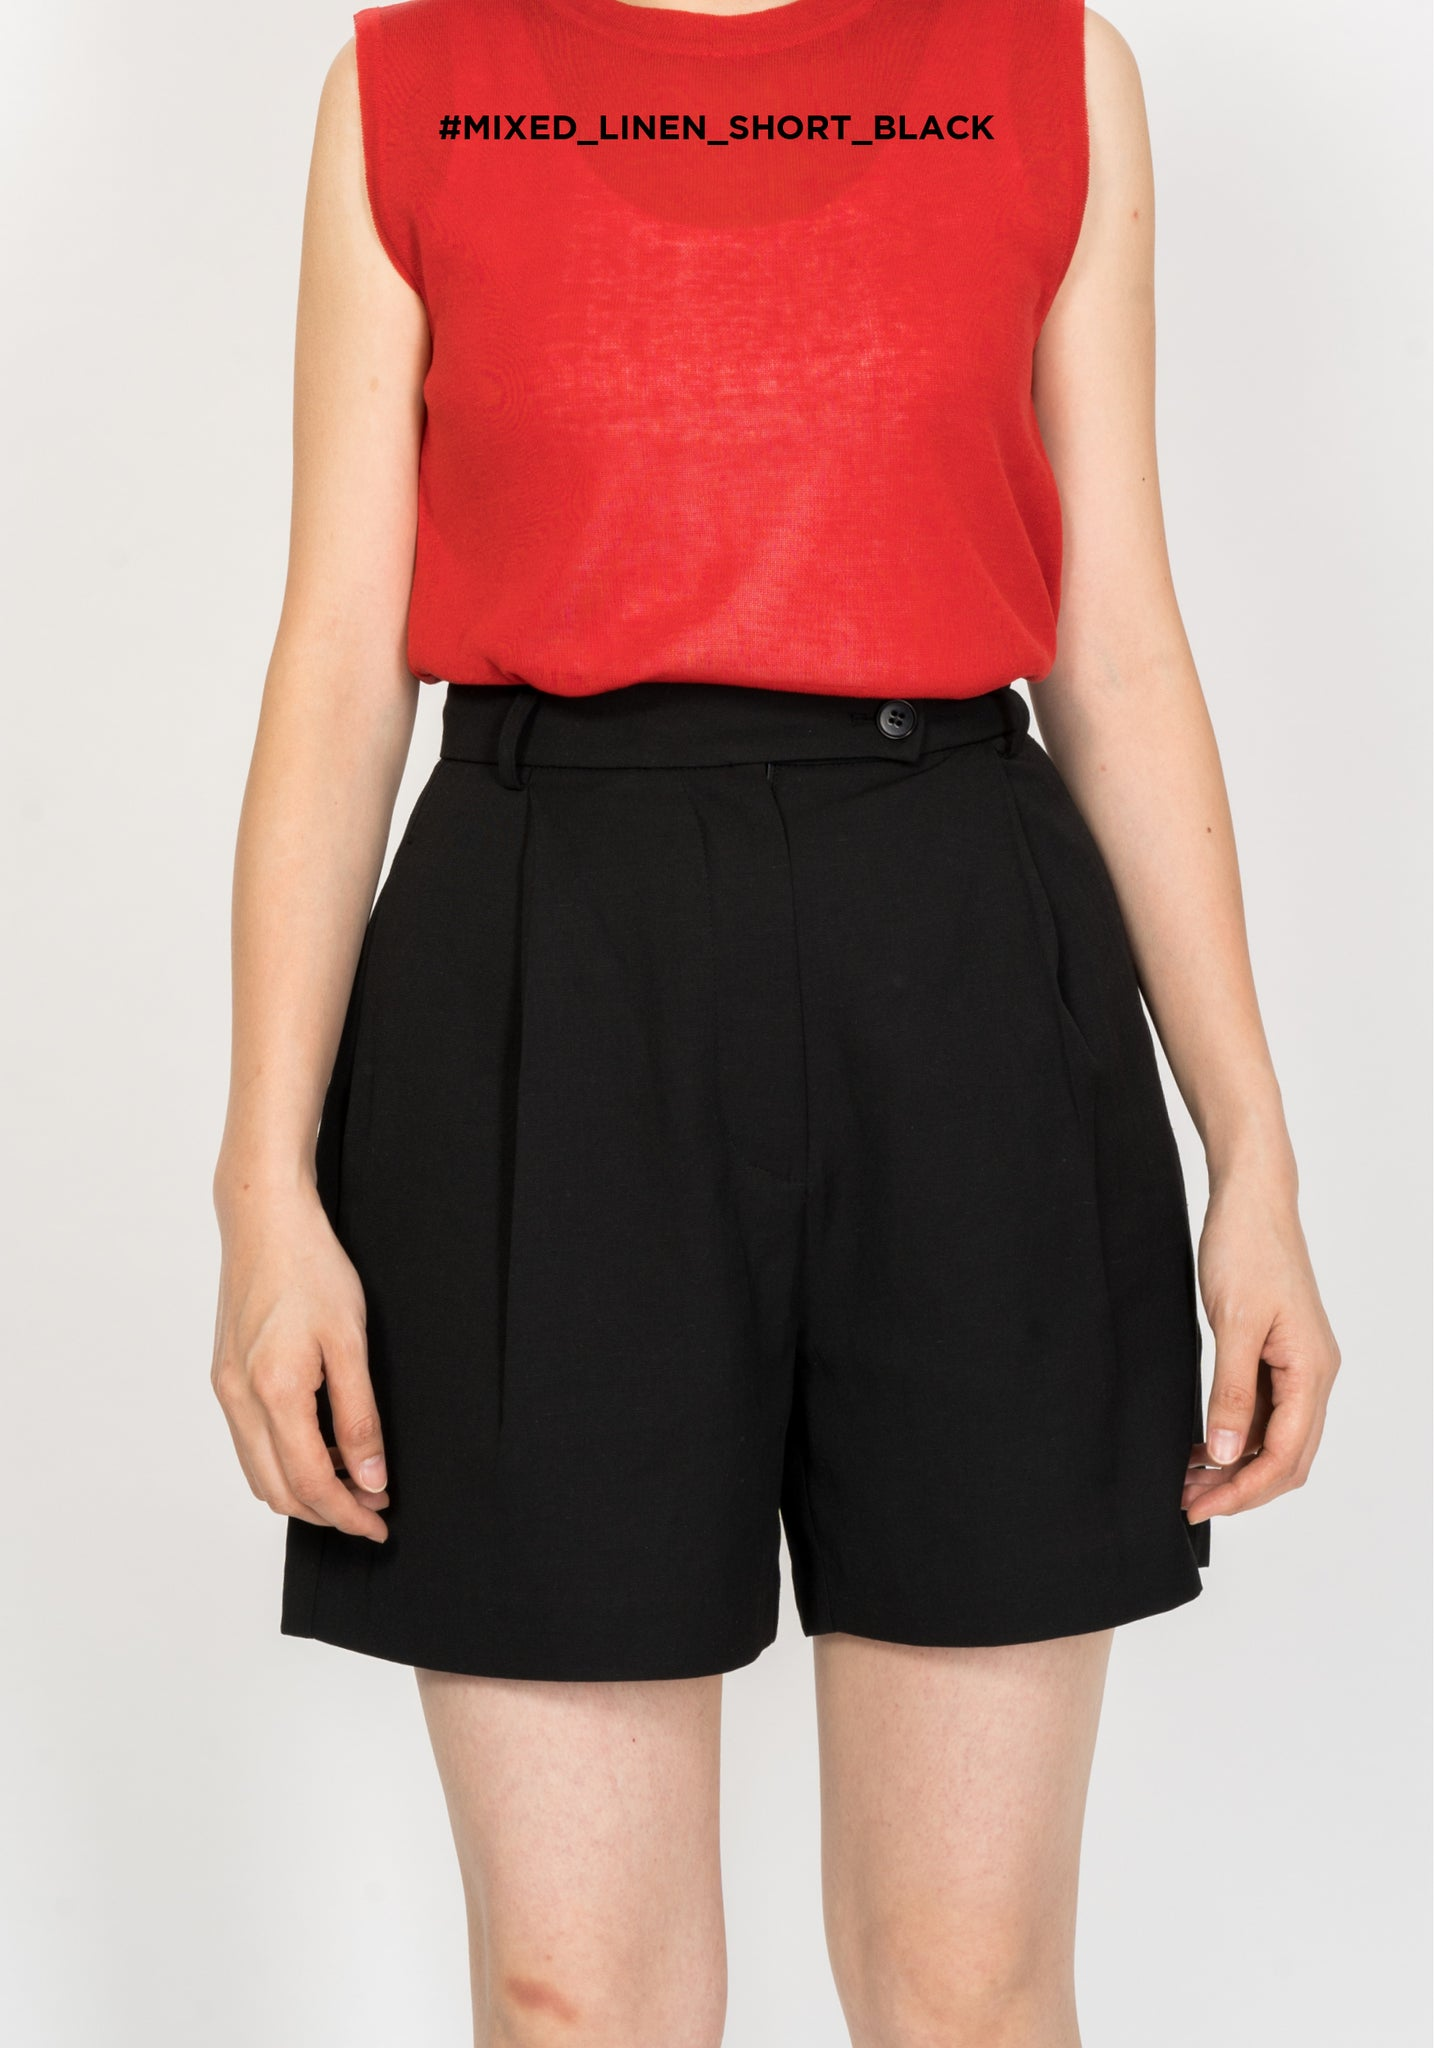 Mixed Linen Shorts Black - whoami